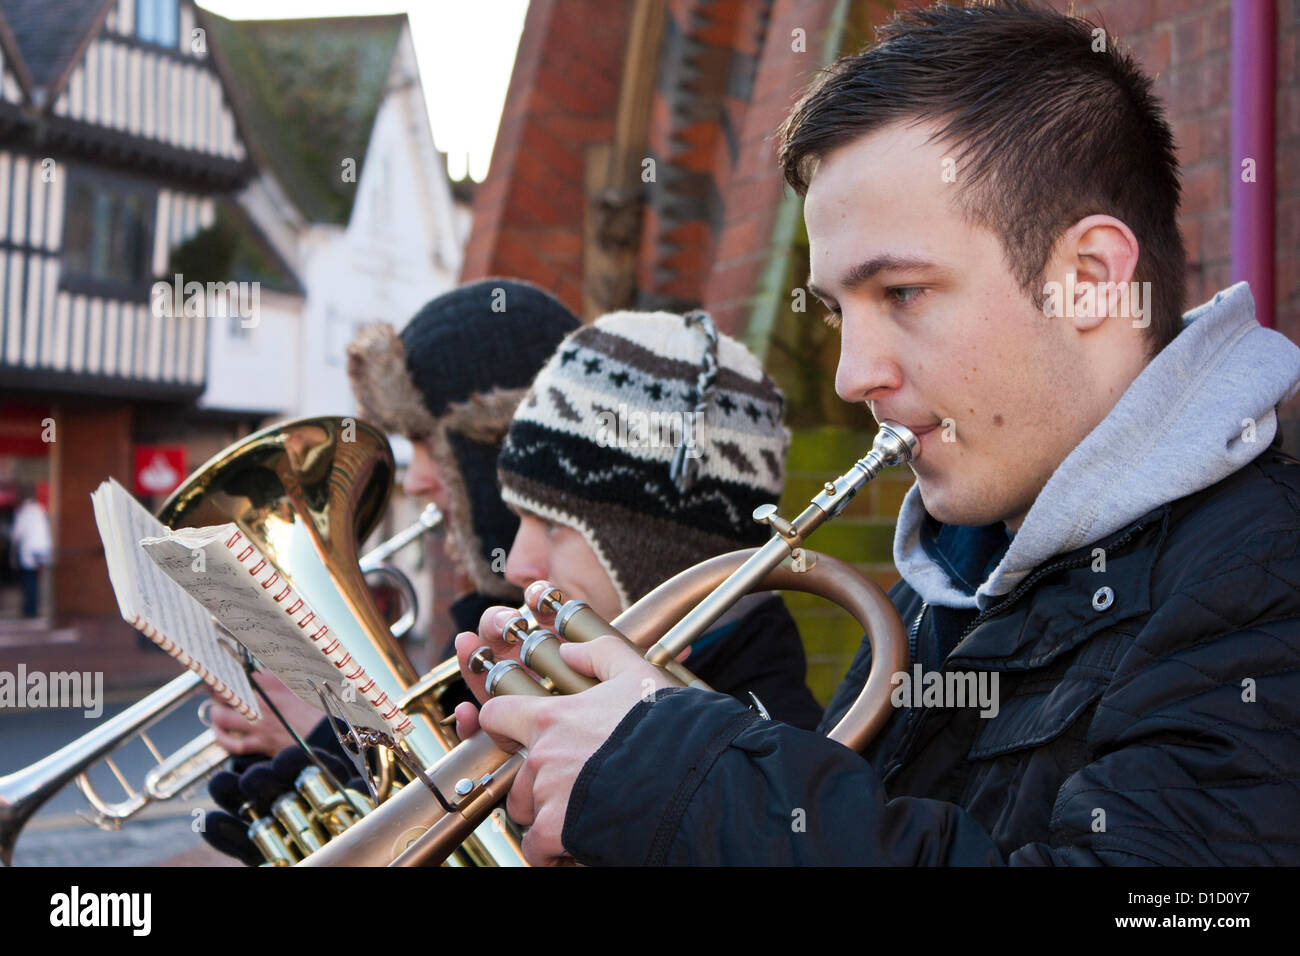 Street musicians play Christmas Carols outside Wokingham Town Hall in Berkshire, England. Stock Photo